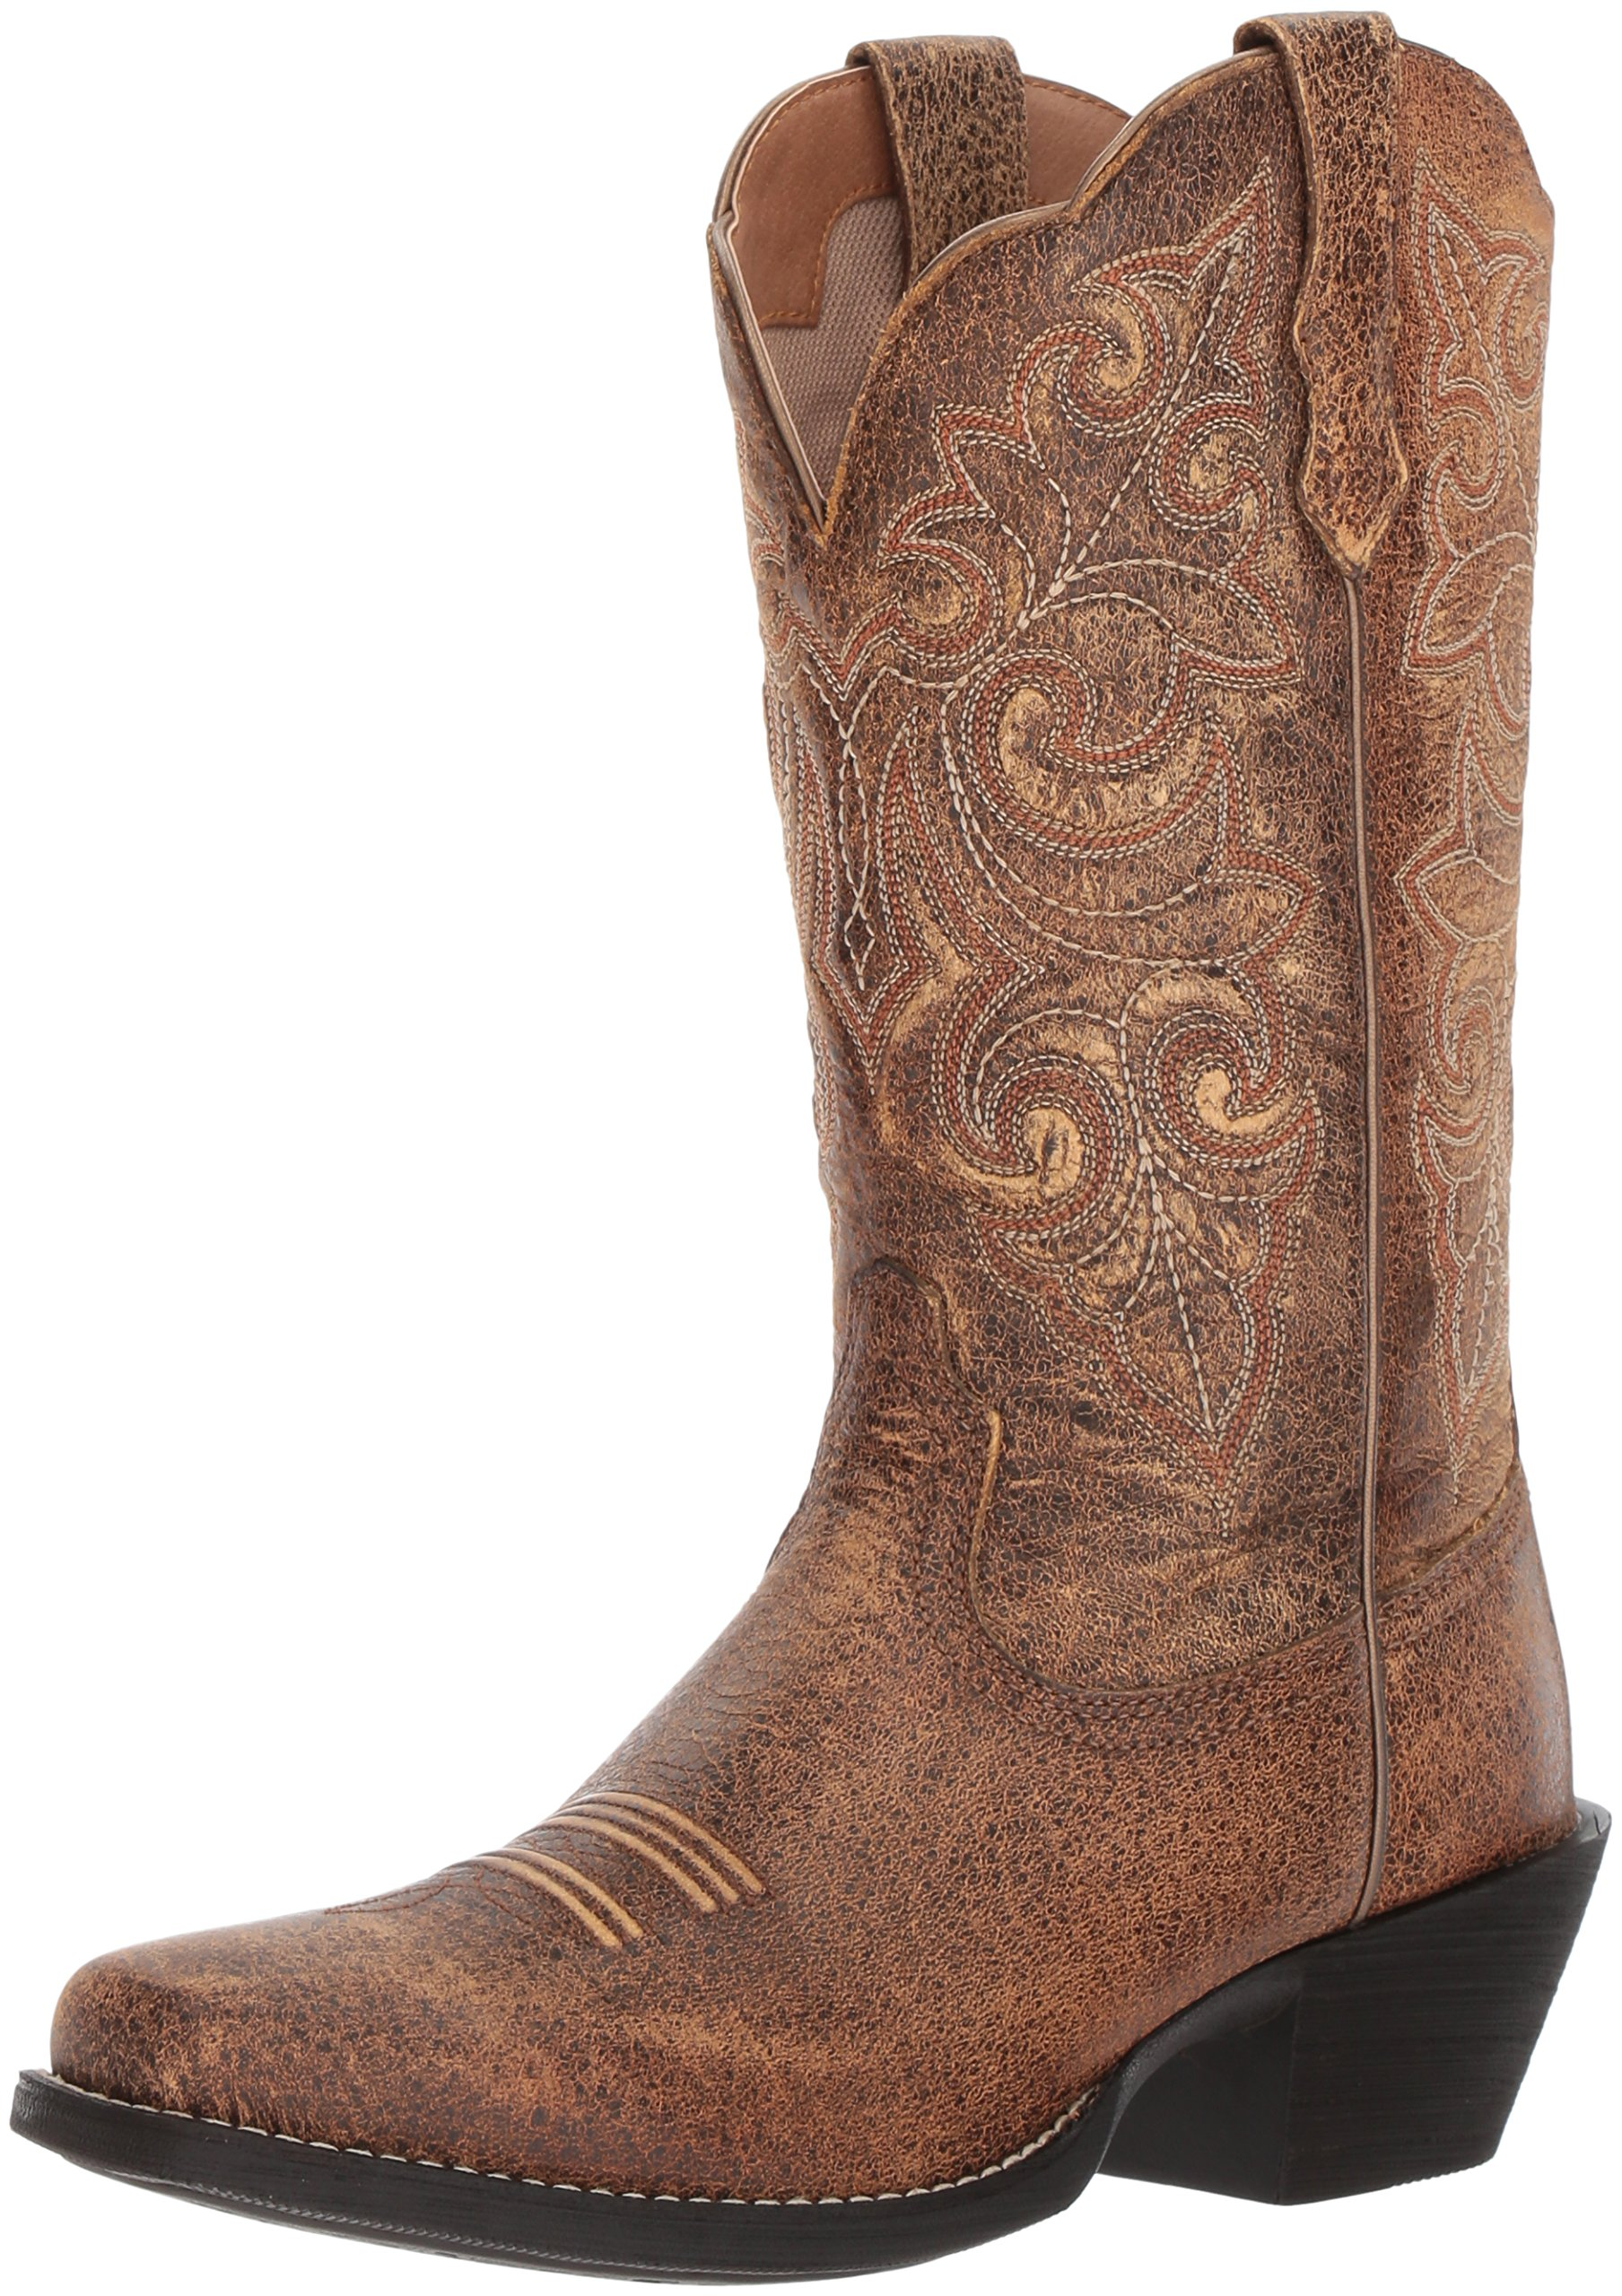 Ariat Women's Round up Square Toe Work Boot, Vintage Bomber, 8 B US